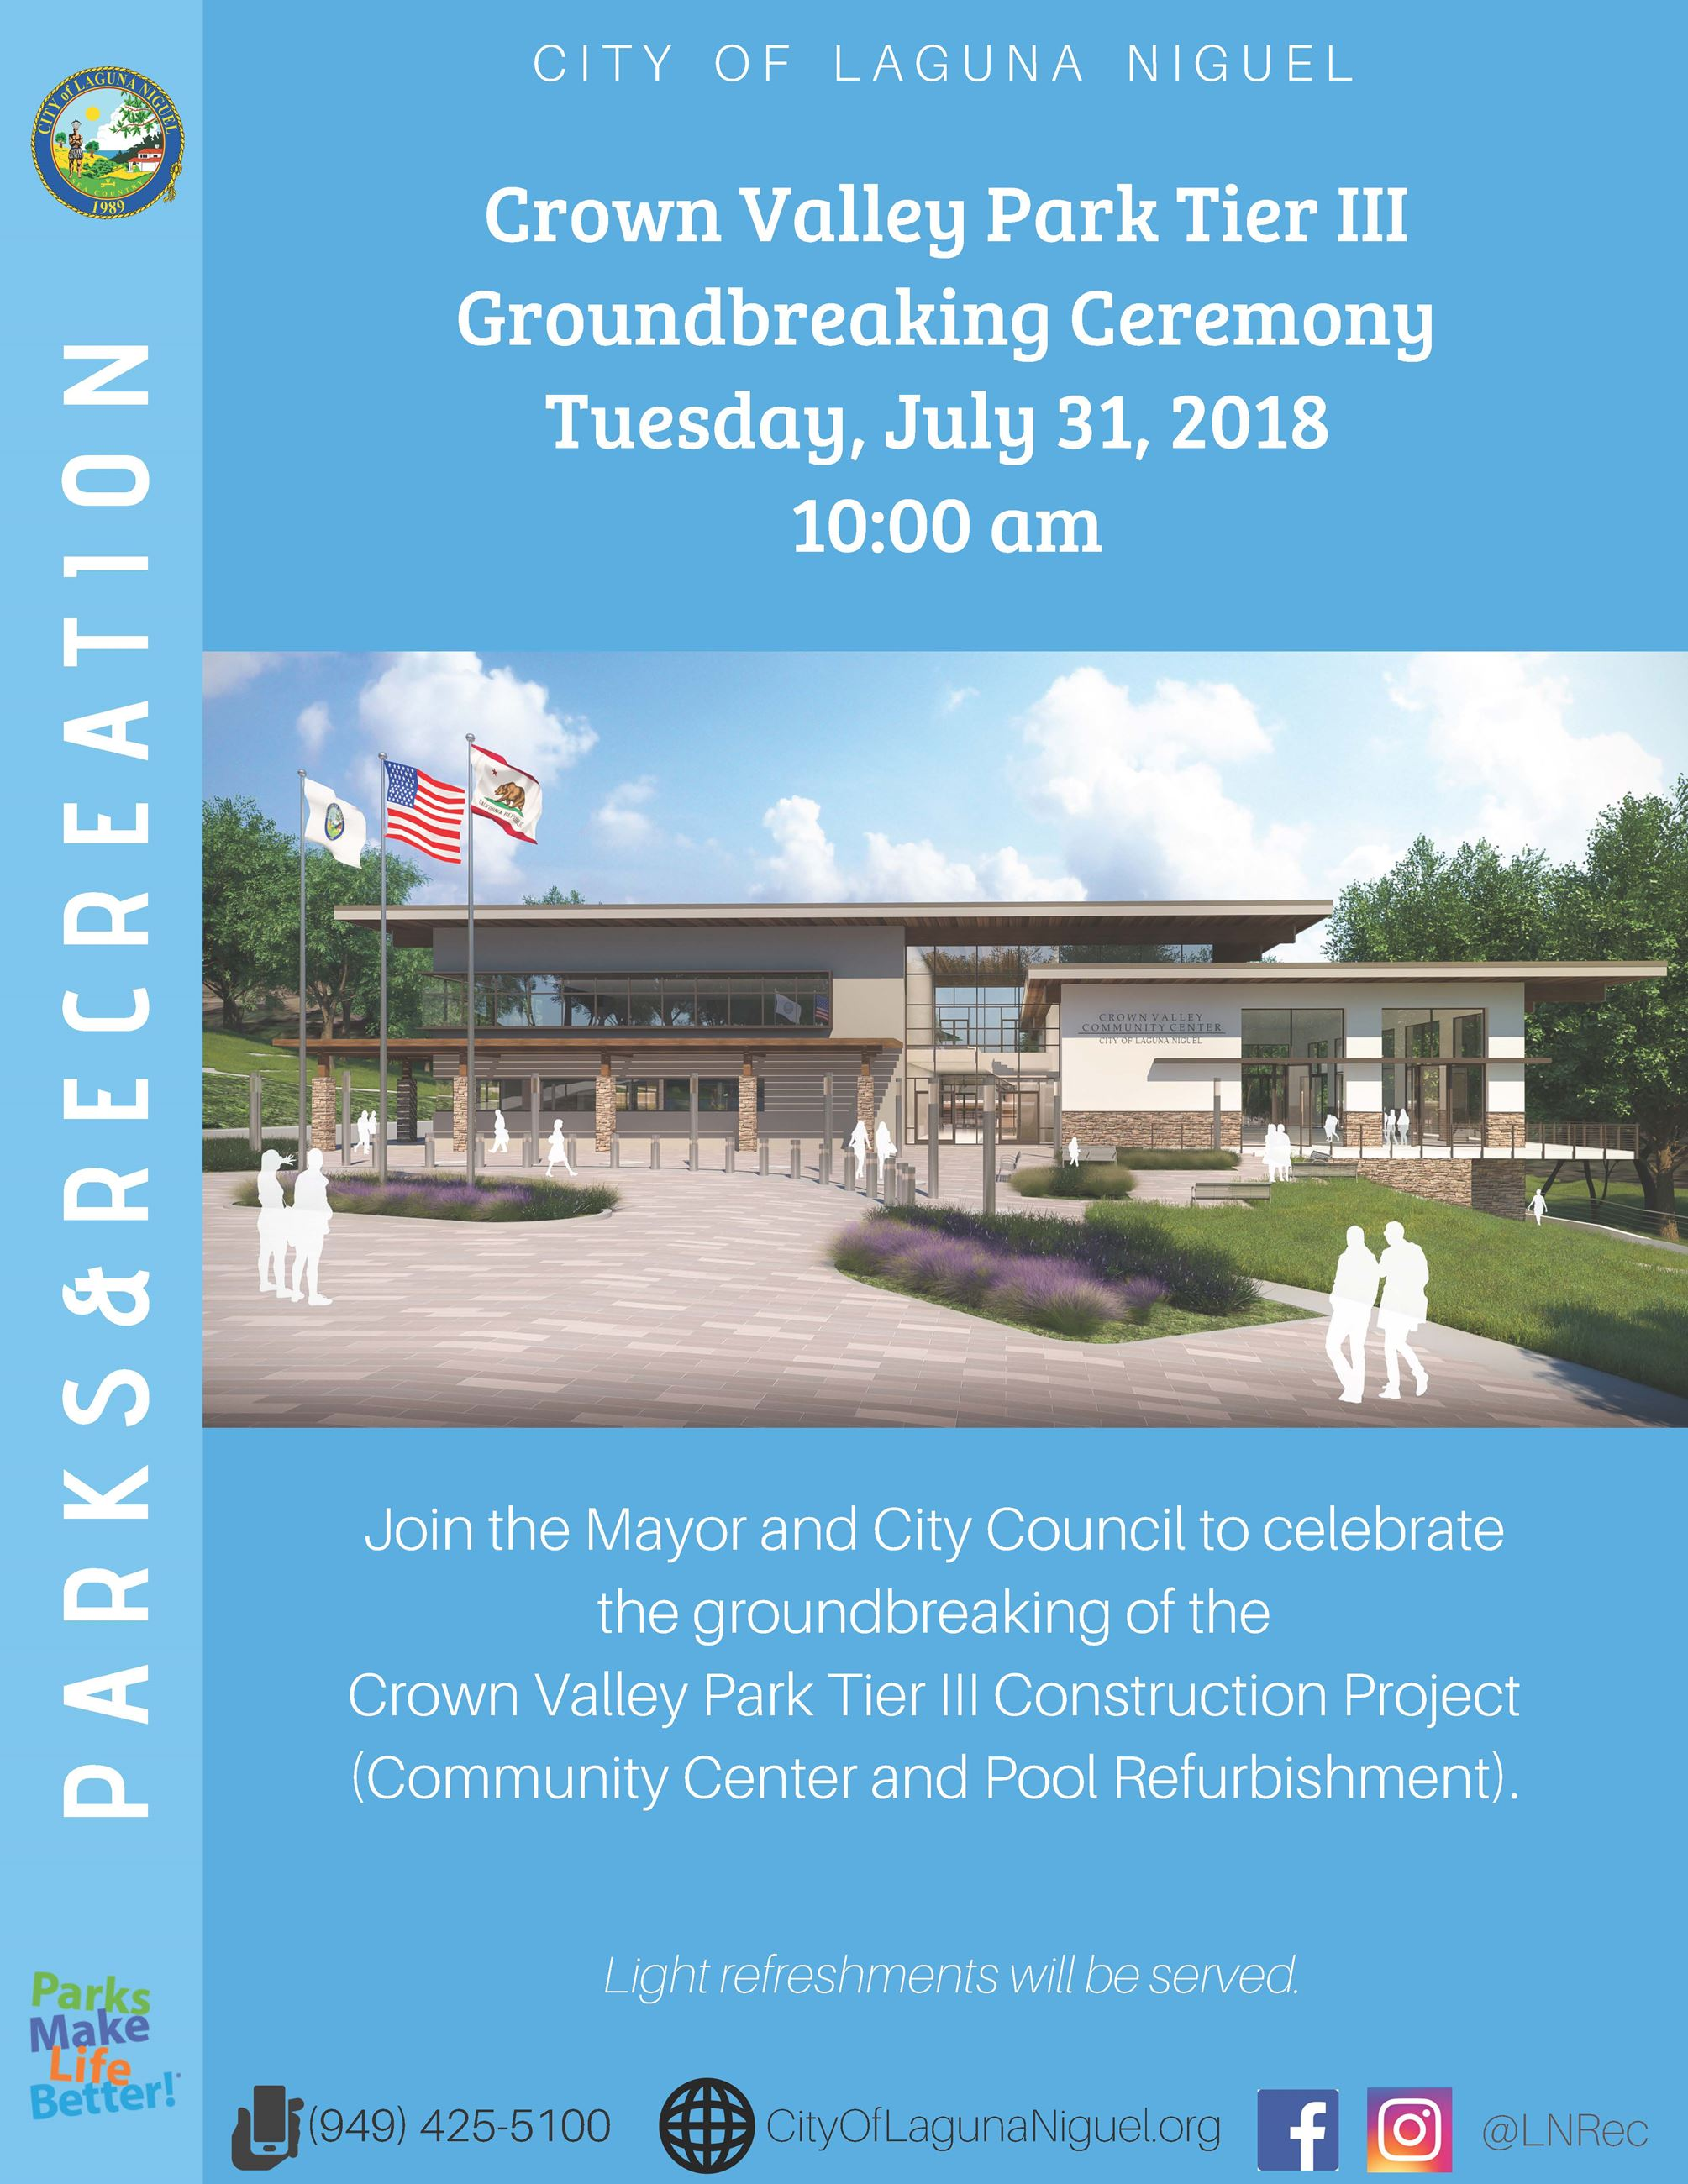 CVP Tier III Groundbreaking Ceremony